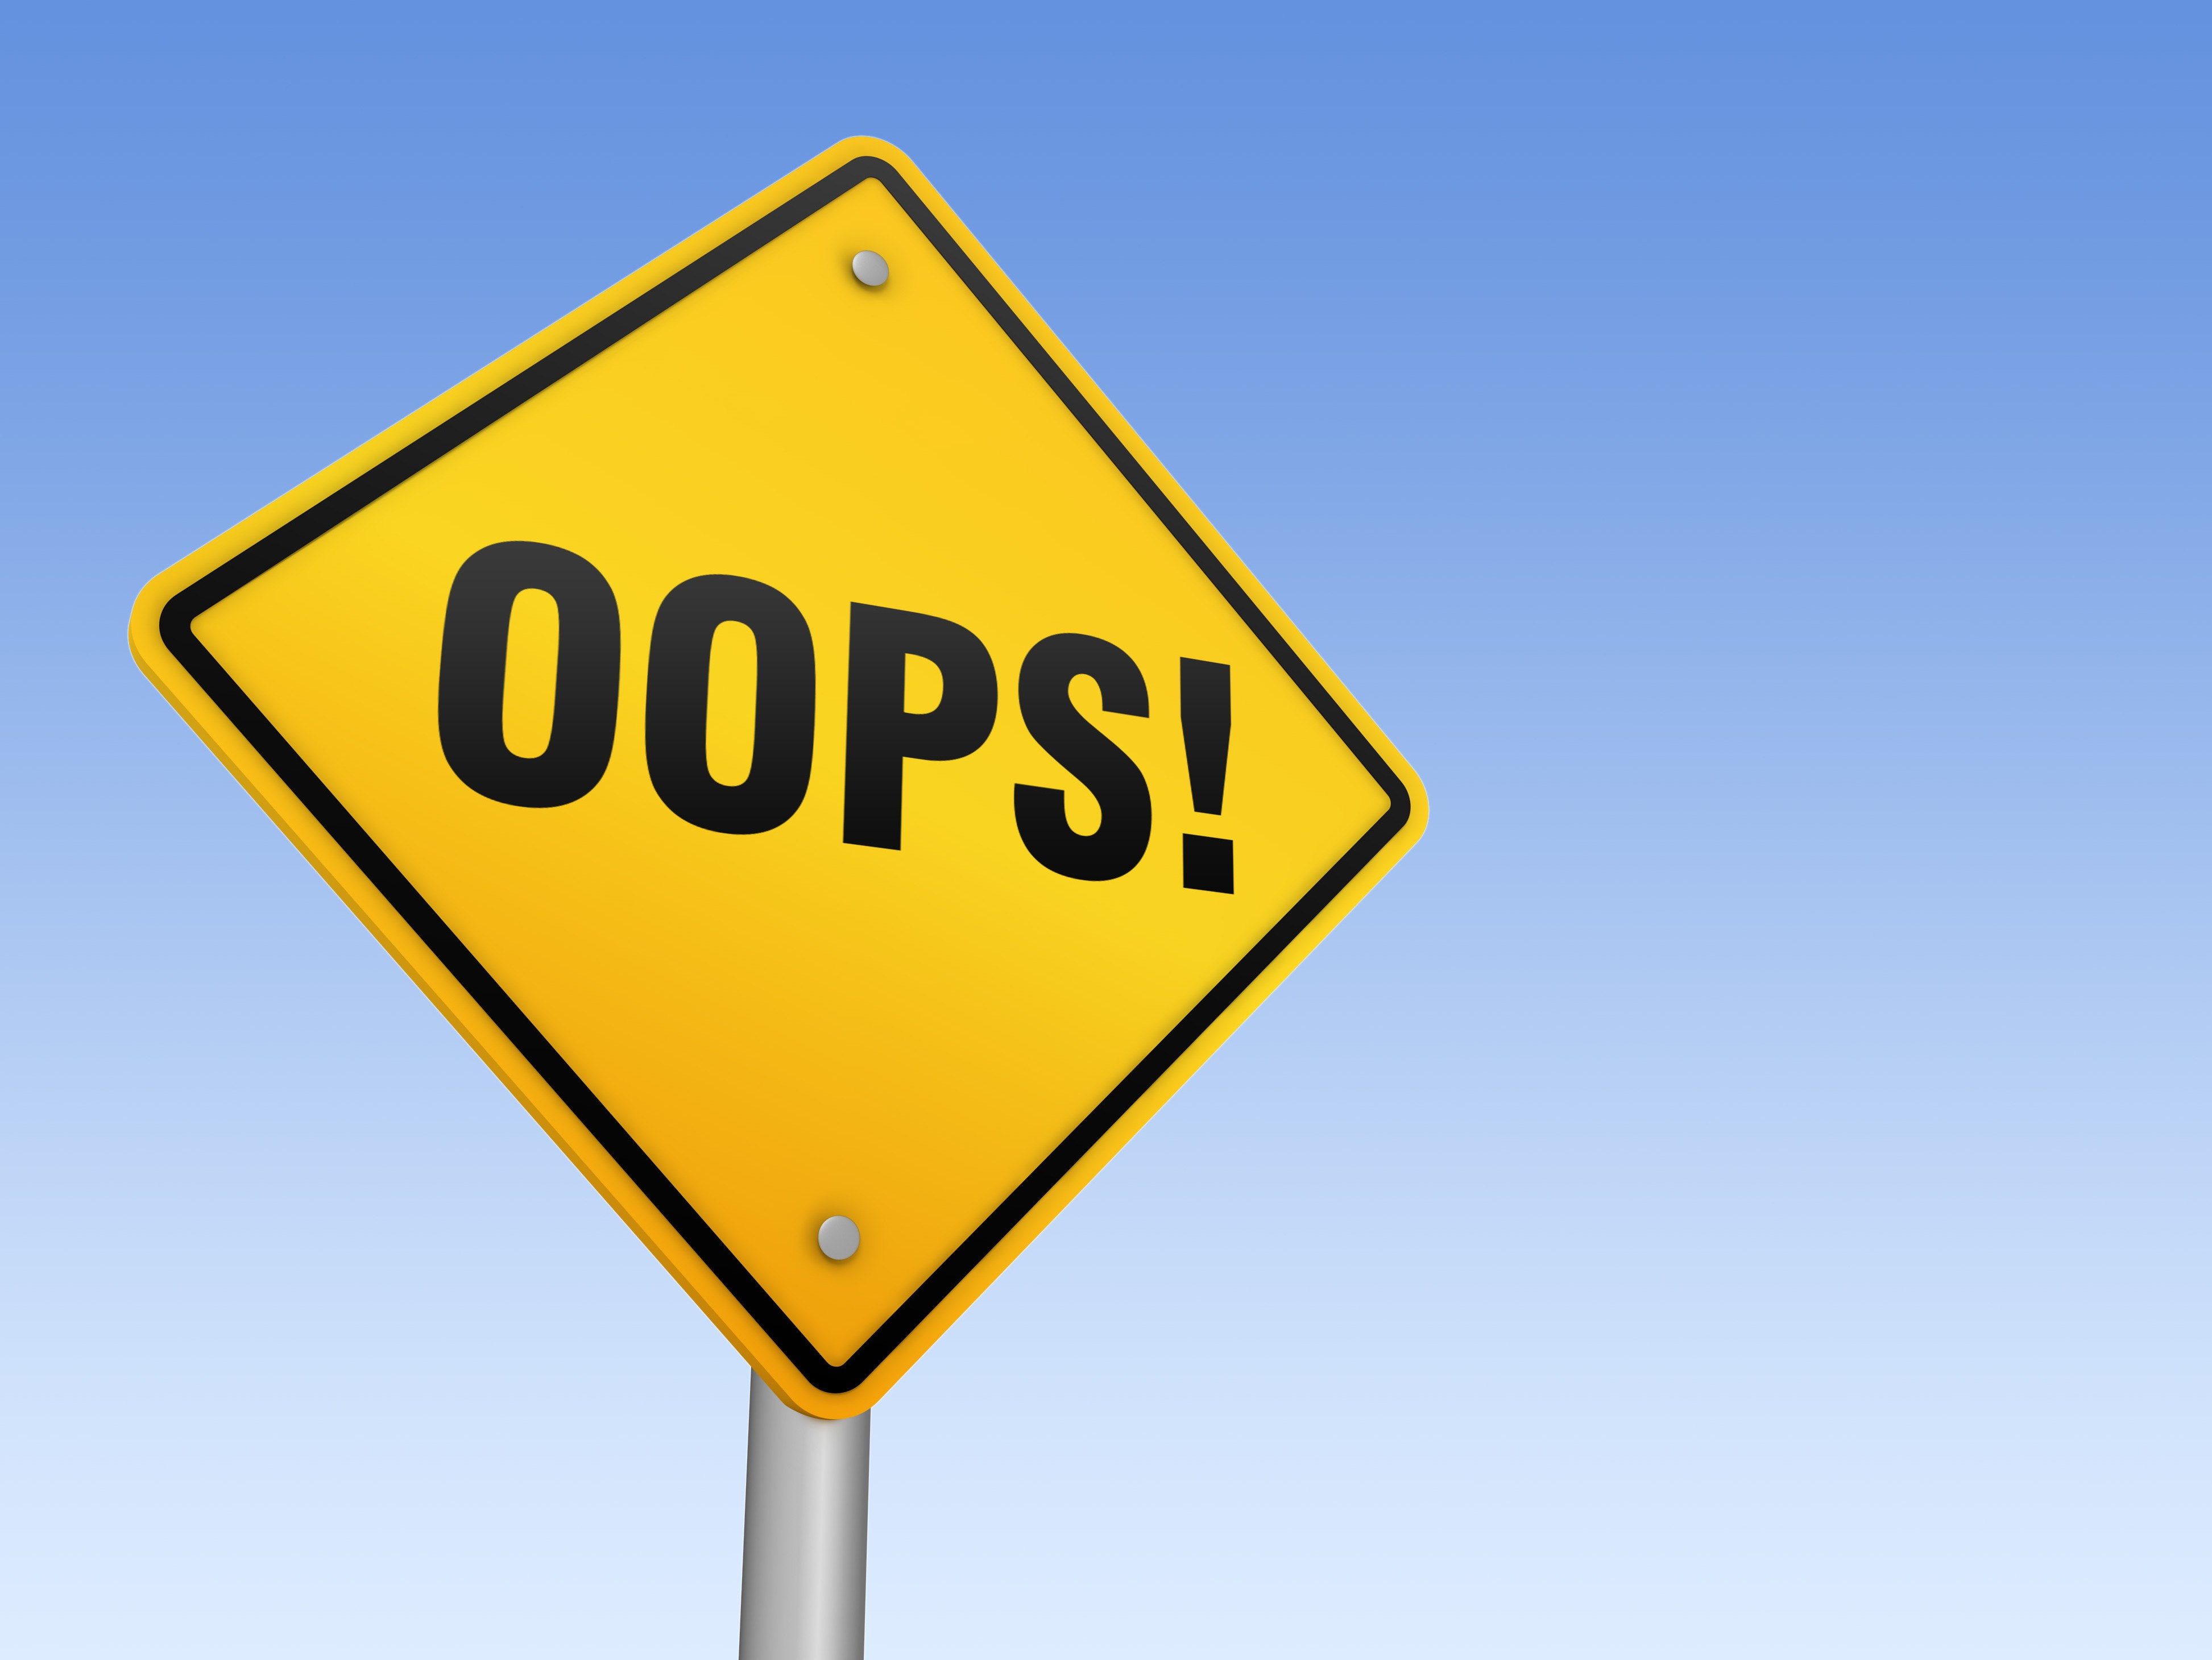 9 Common Mistakes With Signage